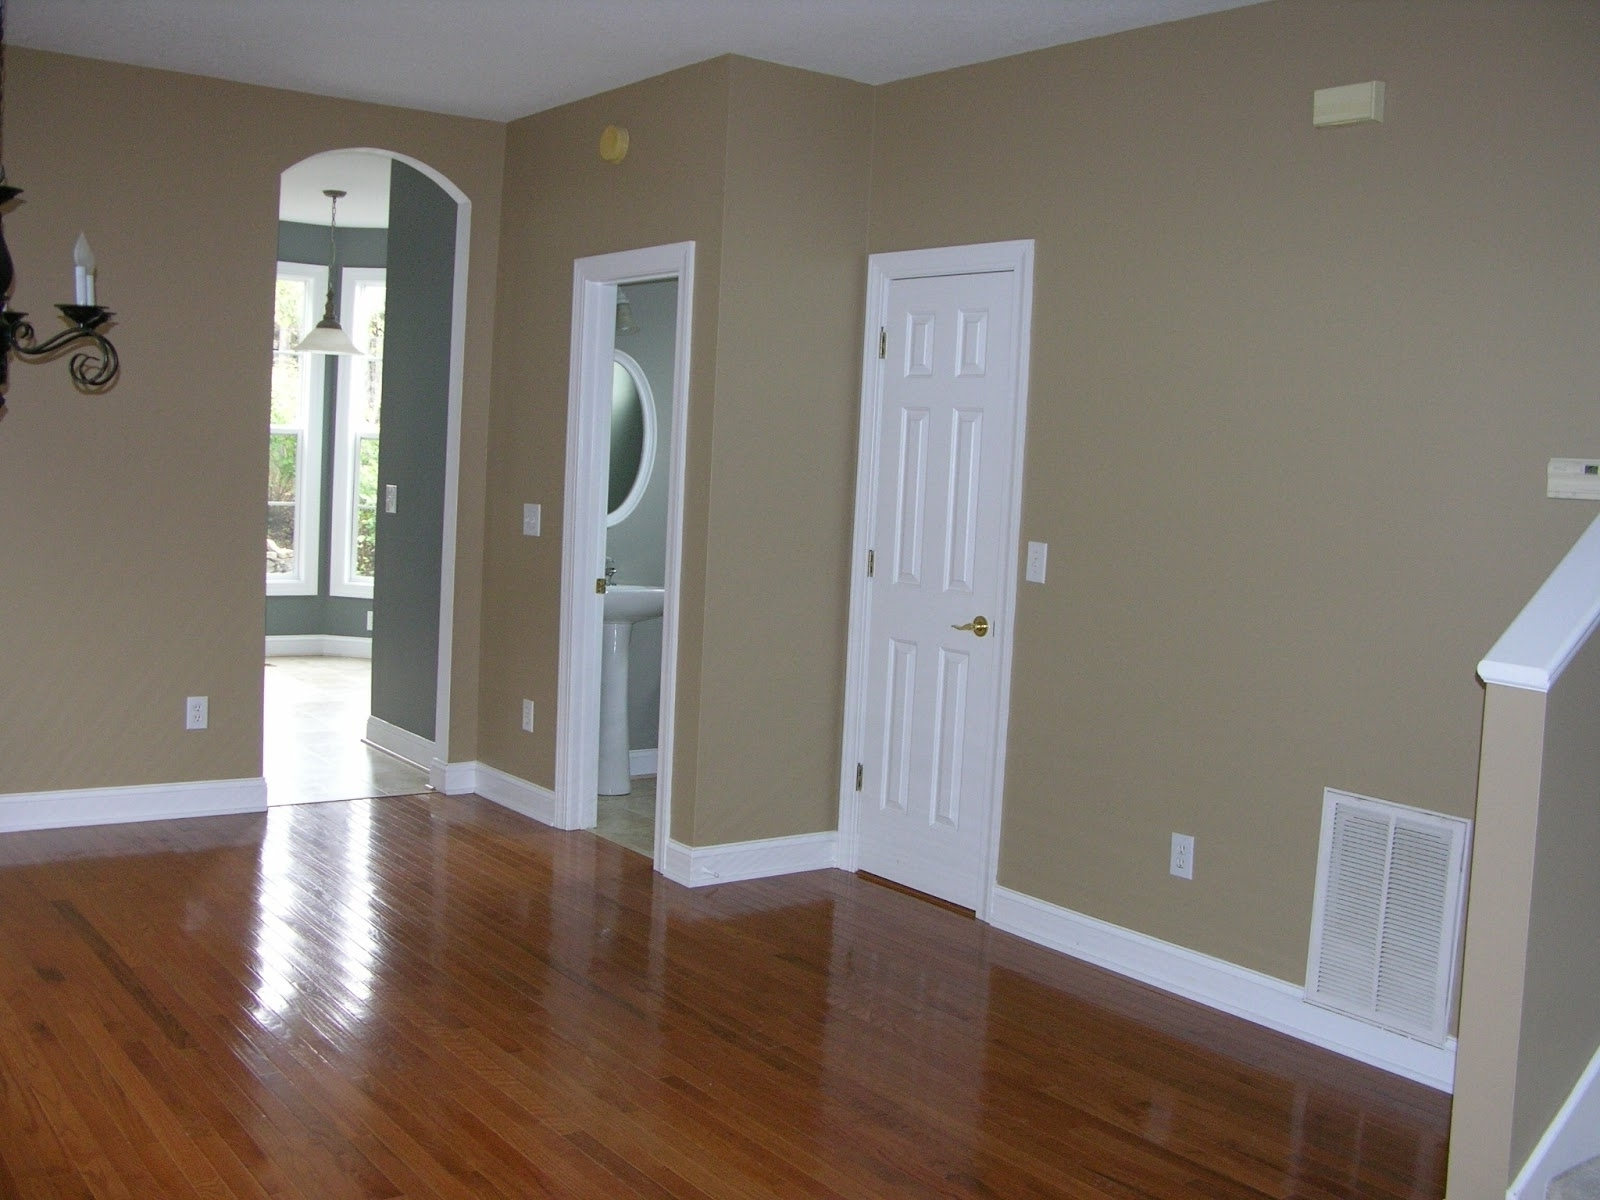 The Most Best Design A Room Paint Decor Design Style In Paint Within Painting Interior Walls Color Ideas Renovation